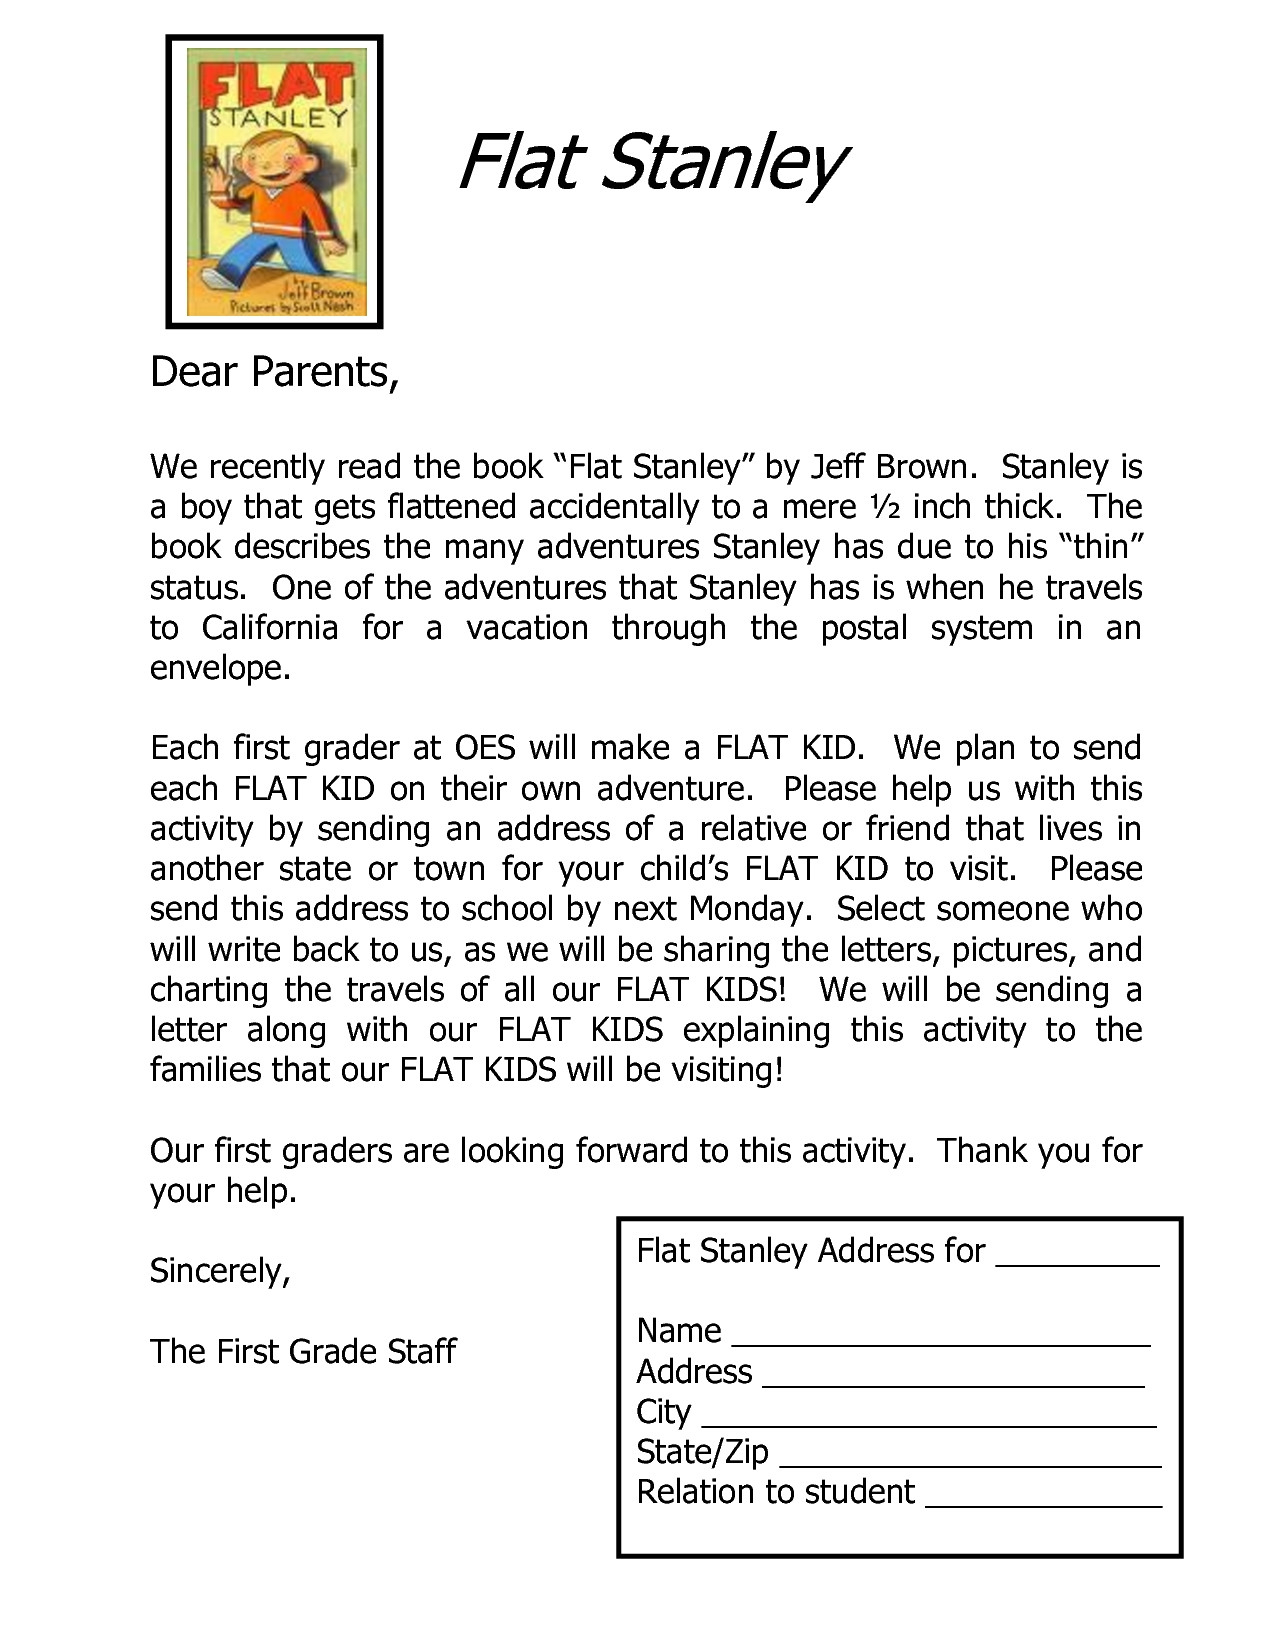 flat stanley letter template Collection-Flat Stanley Letter Template Downloadable Flat Stanley Letter Template Samples apextechnews 1-e